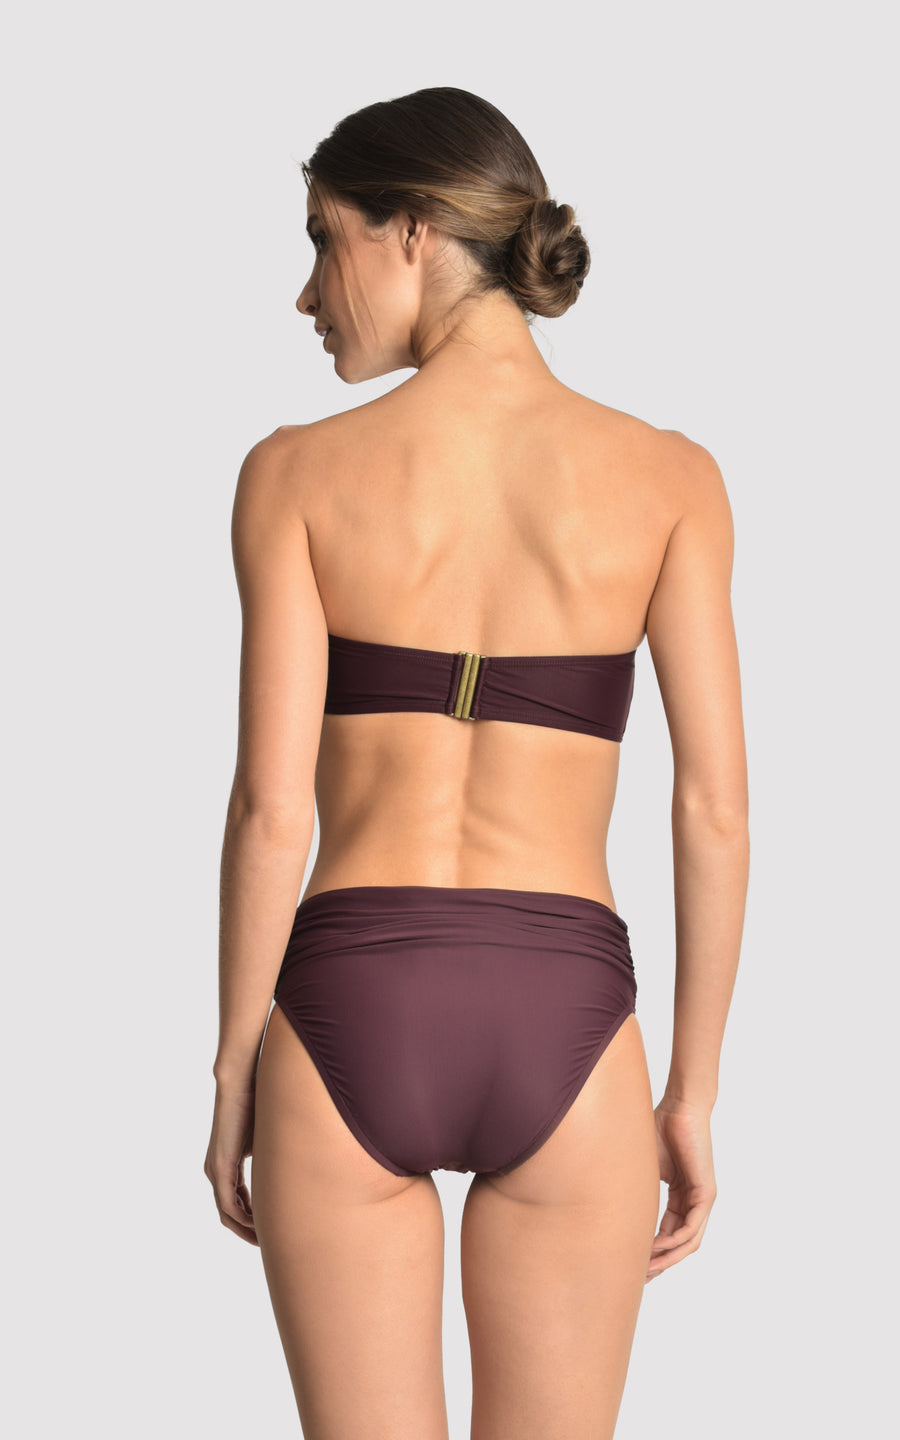 Eggplant Bikini Drop Bandeau Top and High Waist Bottom